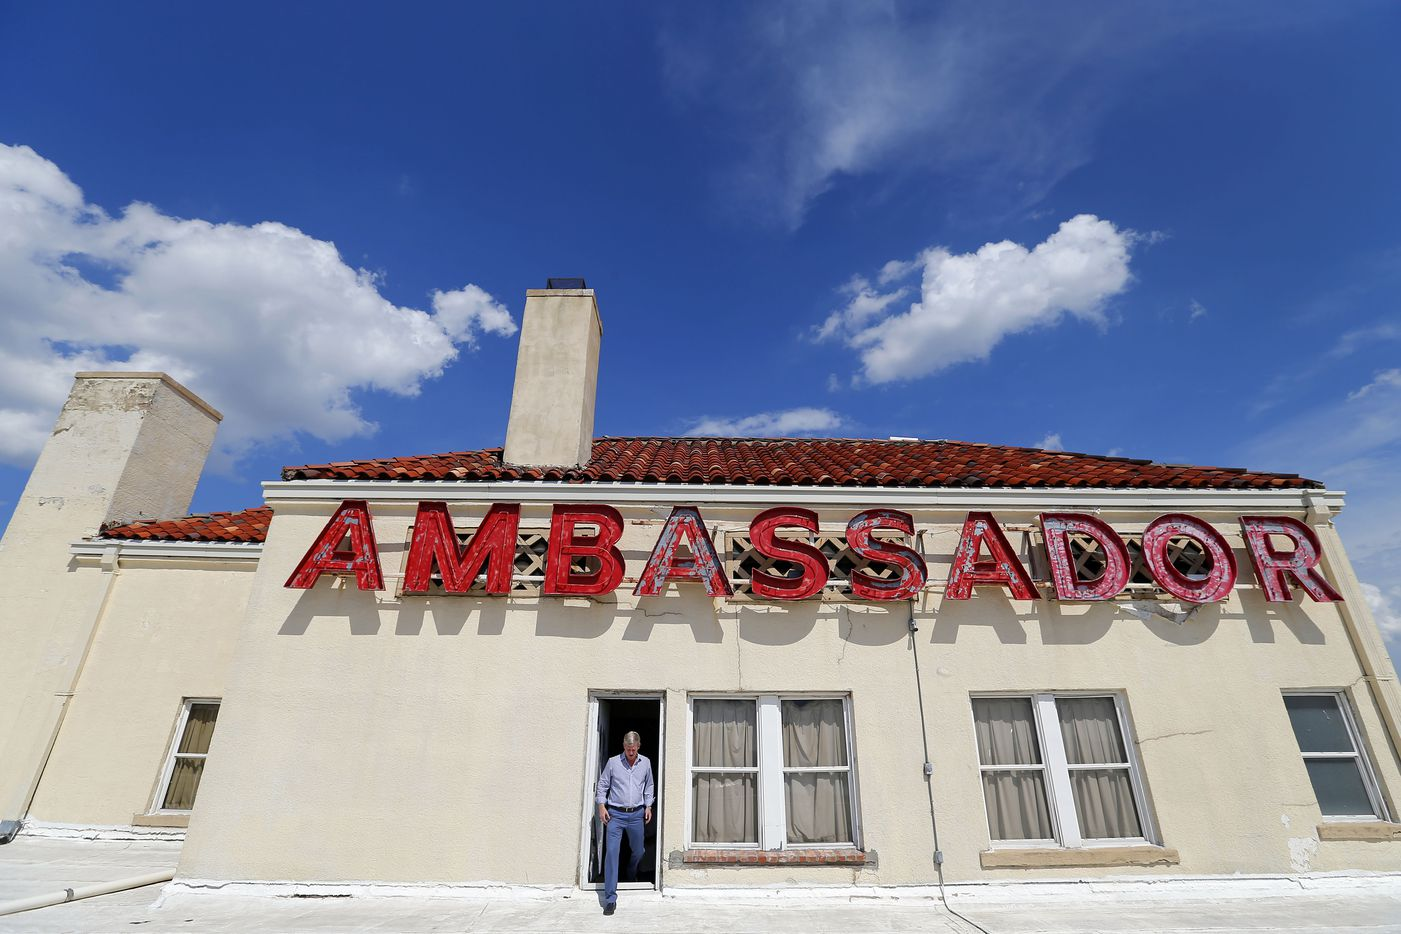 Developer Jim Lake Jr. stepped onto the roof of the Ambassador Hotel in June 2016. Lake planned to convert the hotel into apartments.